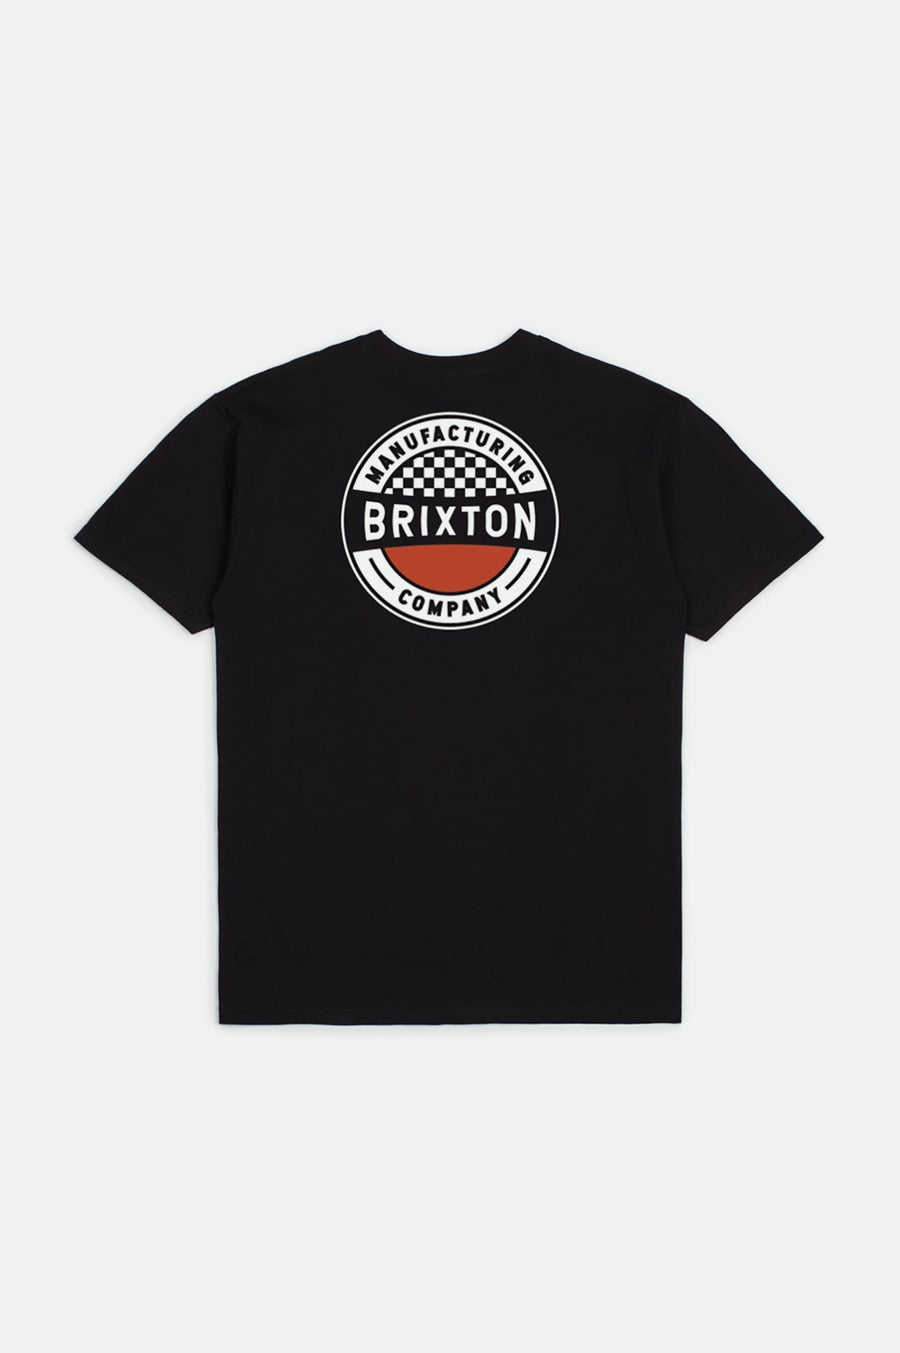 BRIXTON Terminal Standard T-Shirt Worn Wash Black MENS APPAREL - Men's Short Sleeve T-Shirts Brixton M